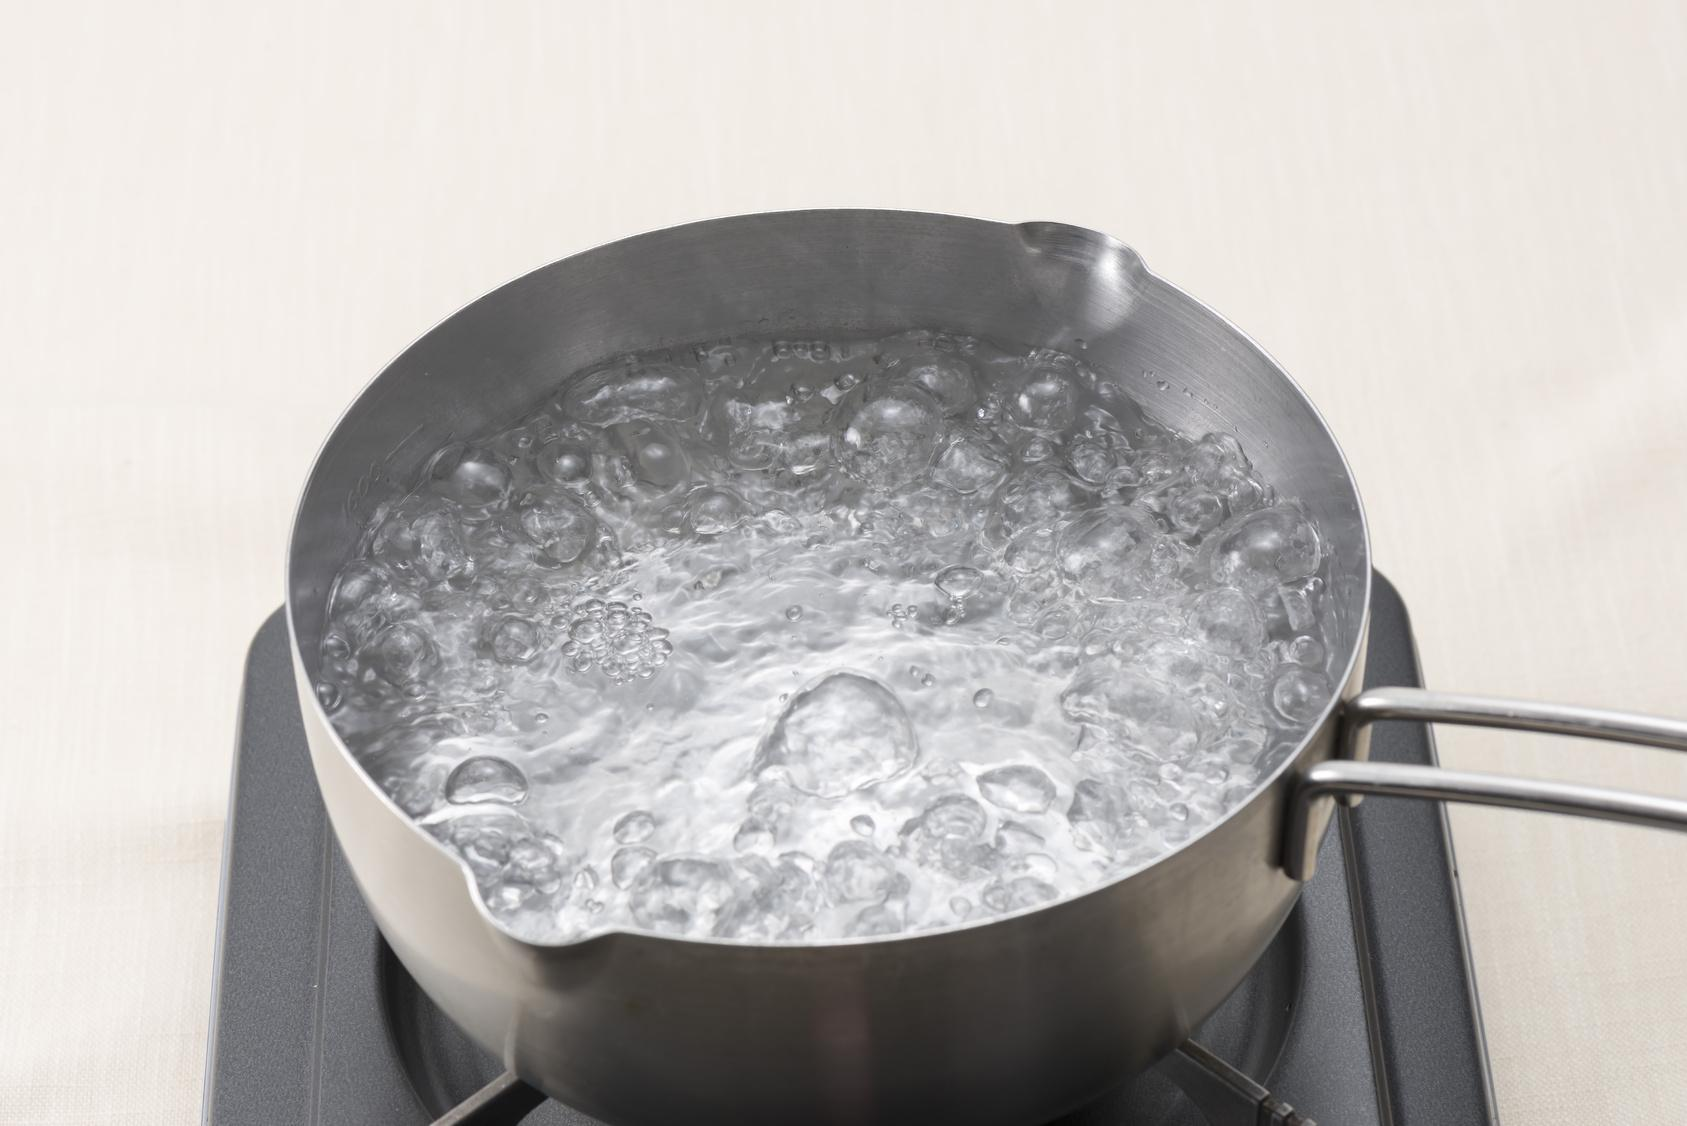 Waiting for water to boil in the pot.